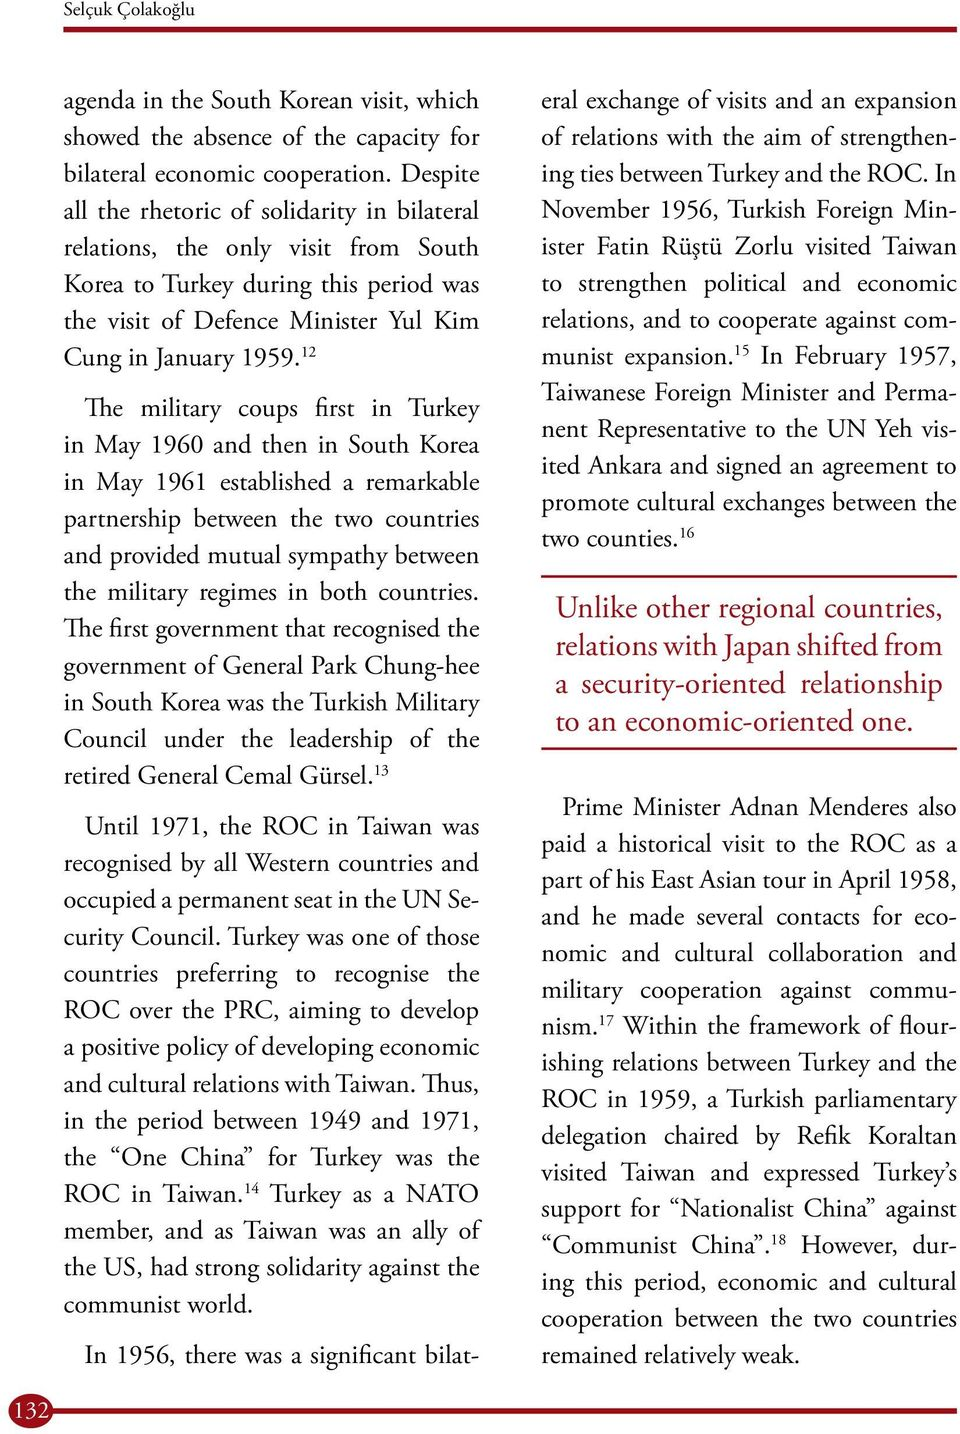 12 The military coups first in Turkey in May 1960 and then in South Korea in May 1961 established a remarkable partnership between the two countries and provided mutual sympathy between the military